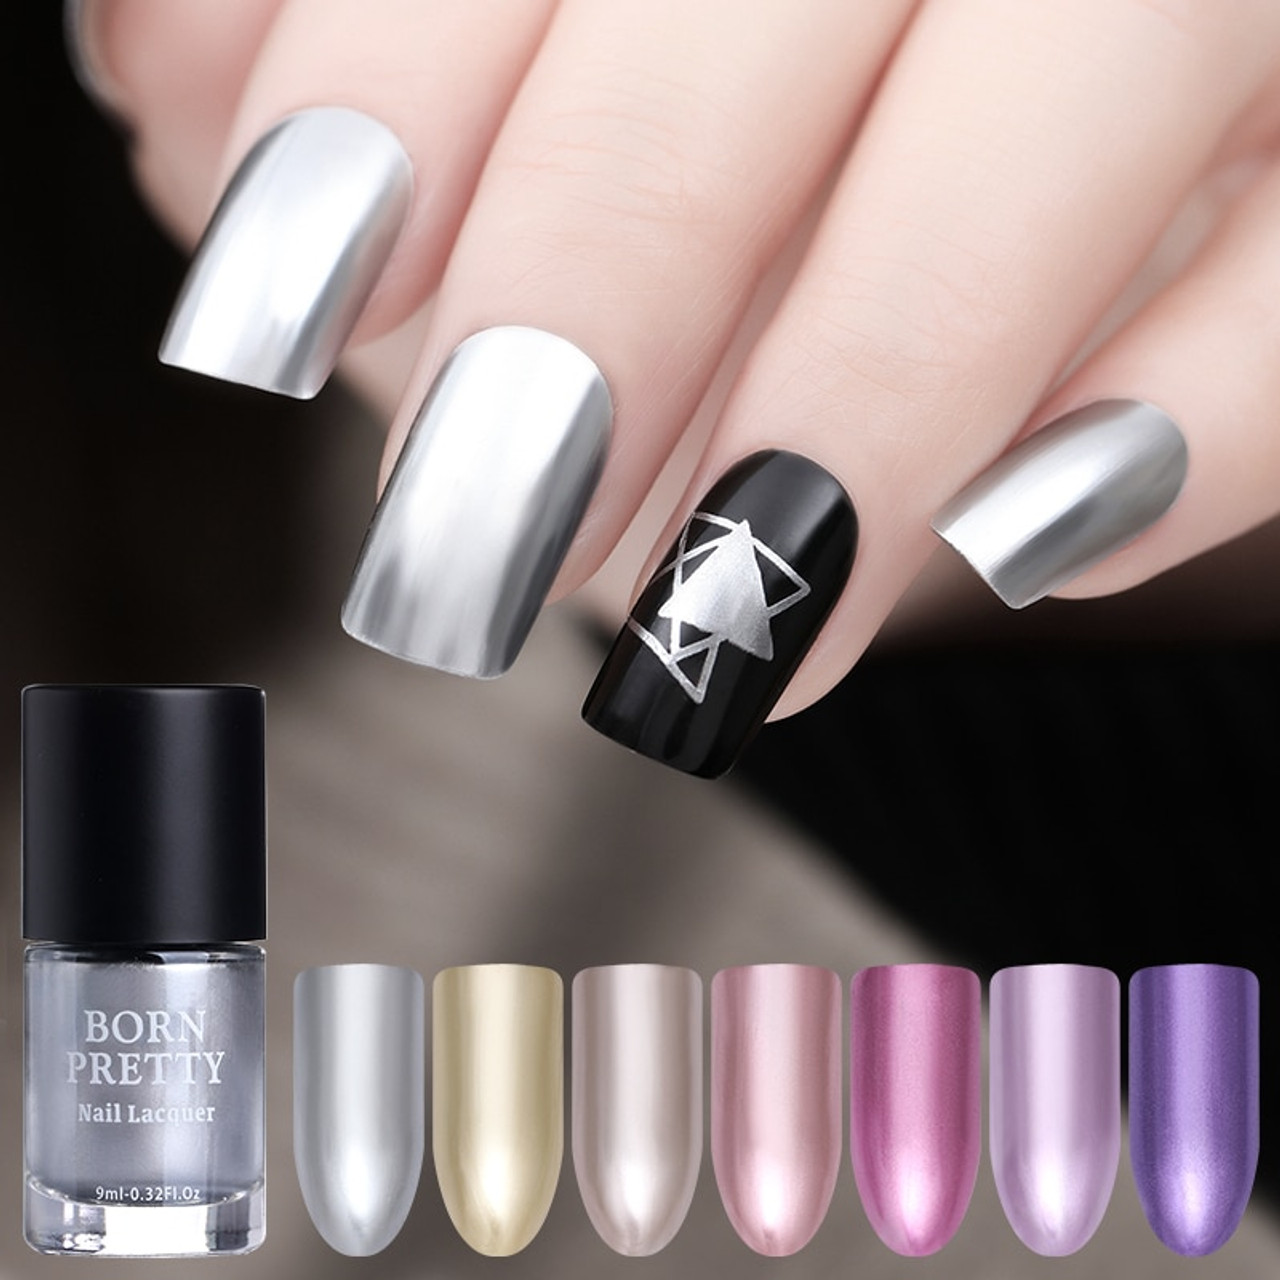 Born Pretty 9ml Mirror Effect Metallic Nail Polish Purple Rose Gold Silver For Stamping Chrome Manicure Nail Art Varnish Onshopdeals Com